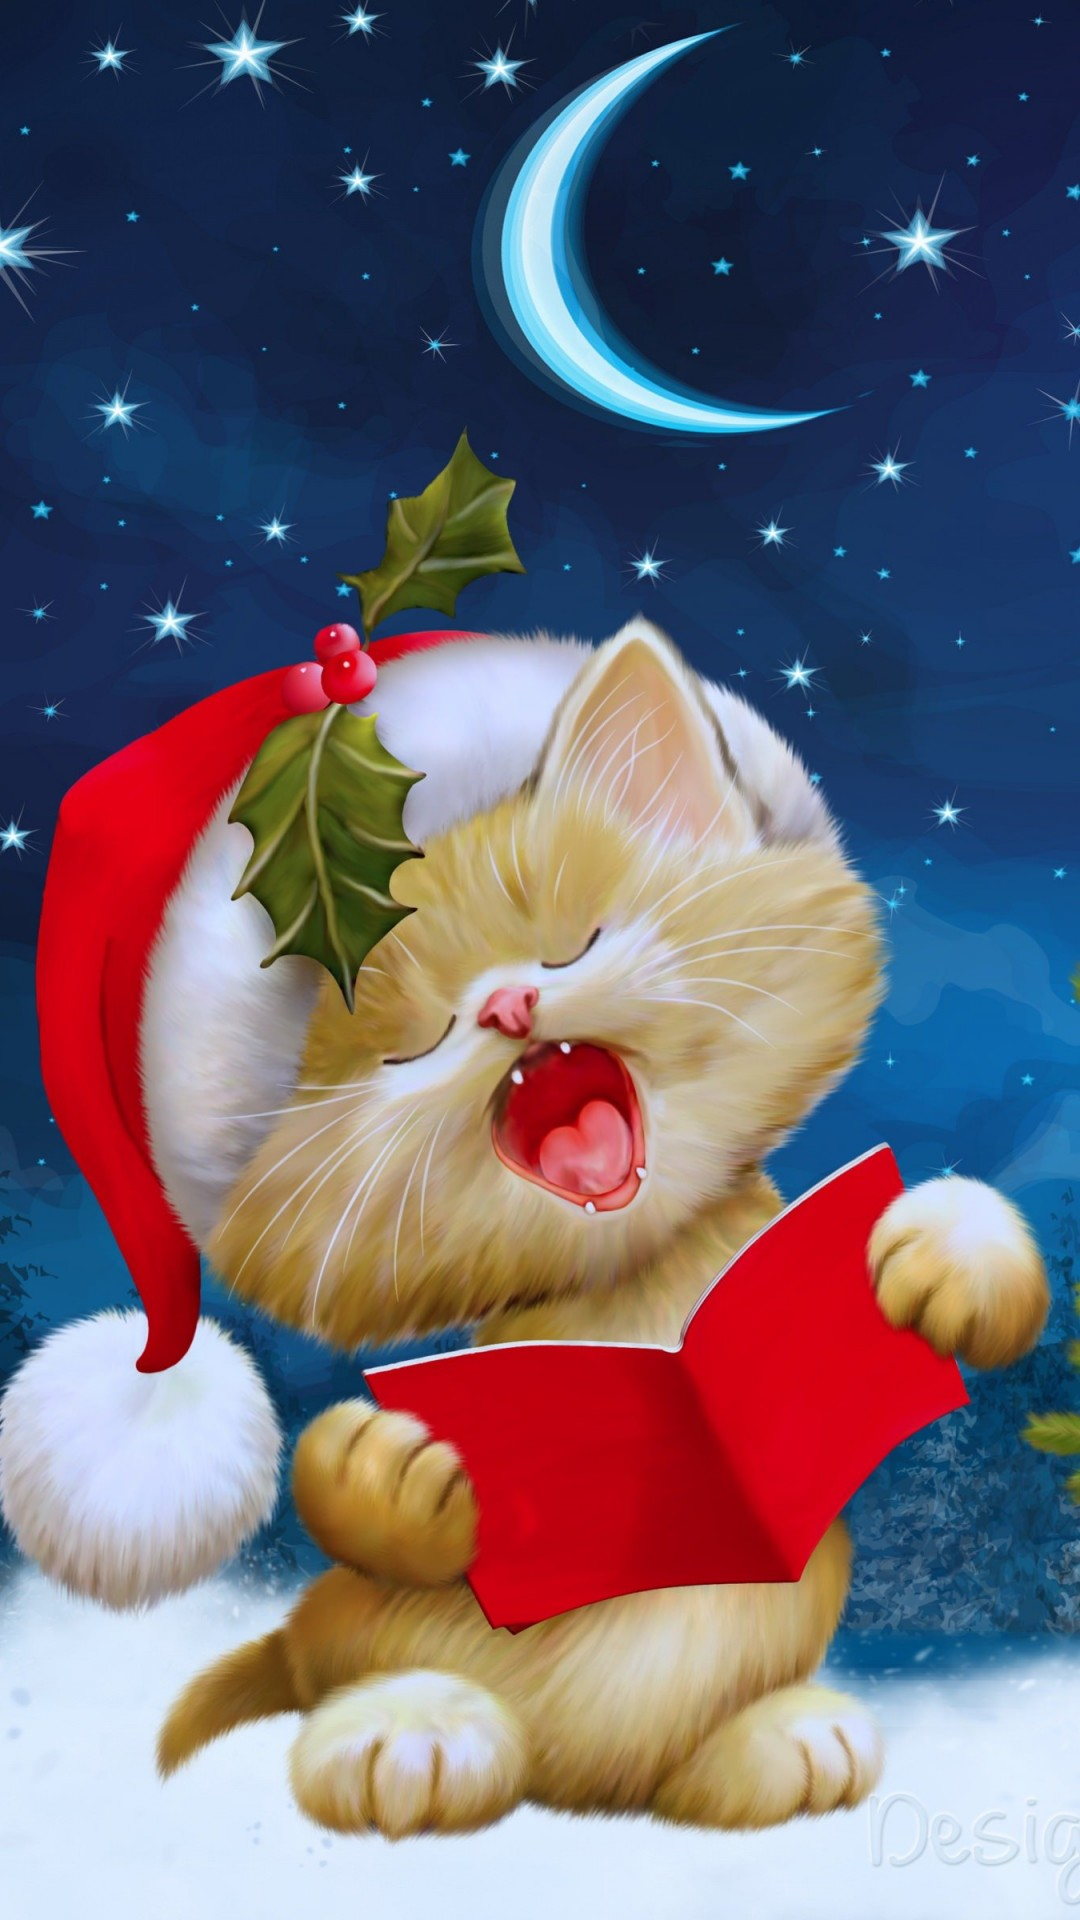 Santa Kitten Singing Christmas Carols Wallpaper for Google Nexus 5